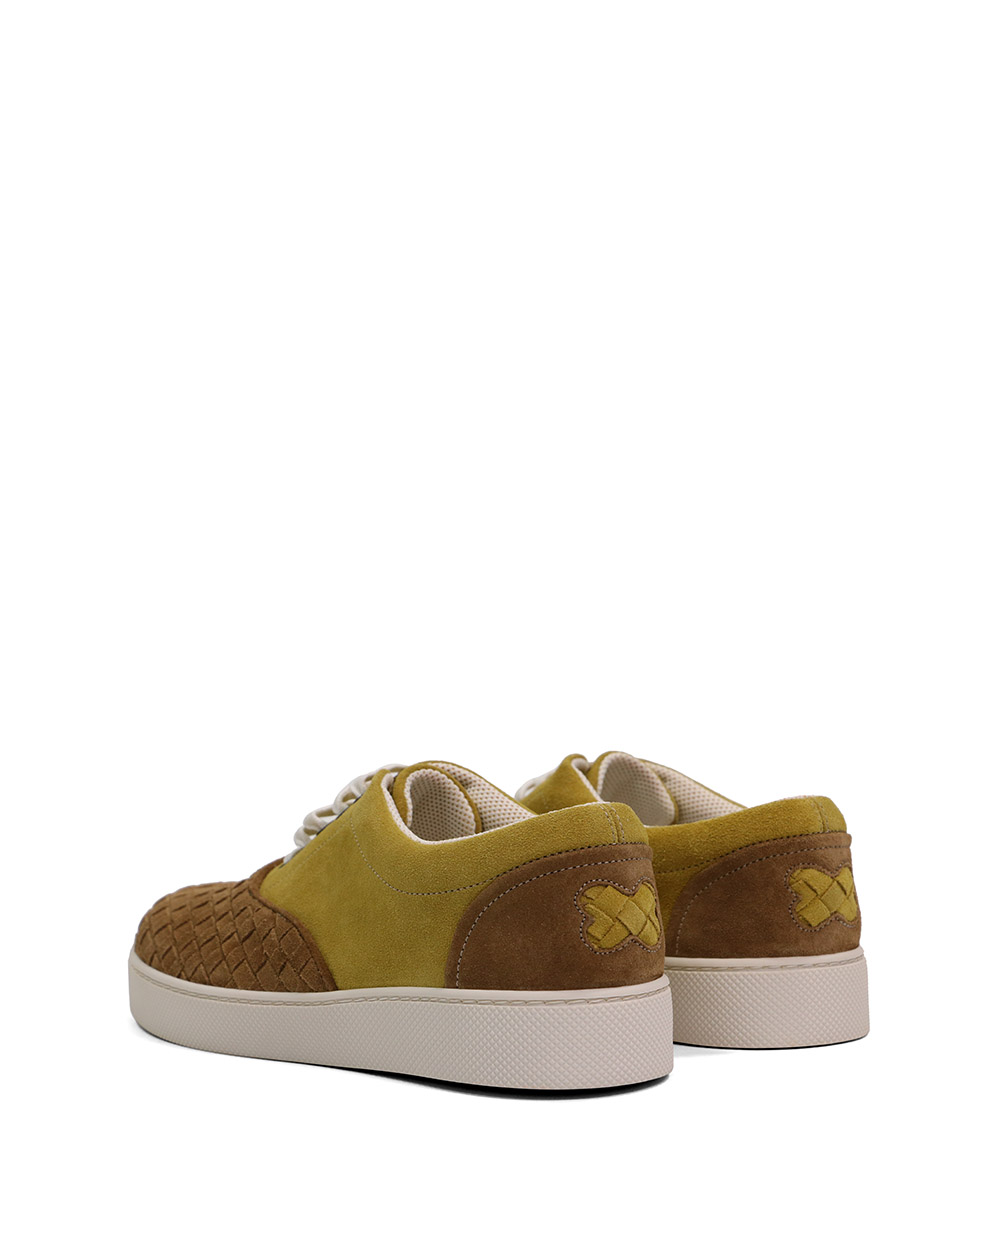 Woven Suede Sneakers 2